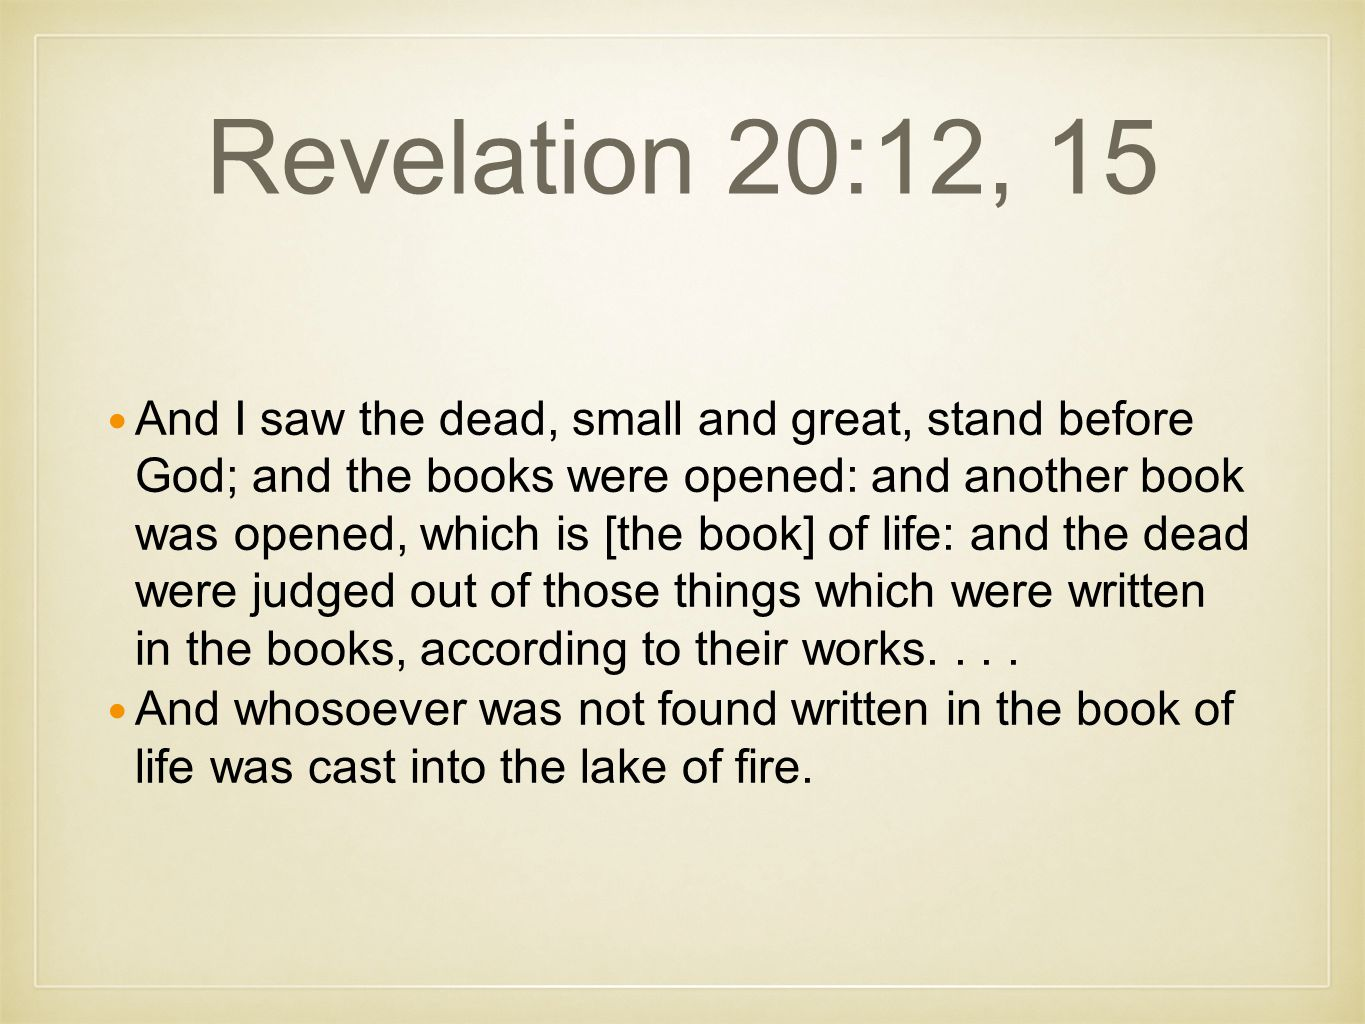 Revelation 20:12, 15 And I saw the dead, small and great, stand before God; and the books were opened: and another book was opened, which is [the book] of life: and the dead were judged out of those things which were written in the books, according to their works....